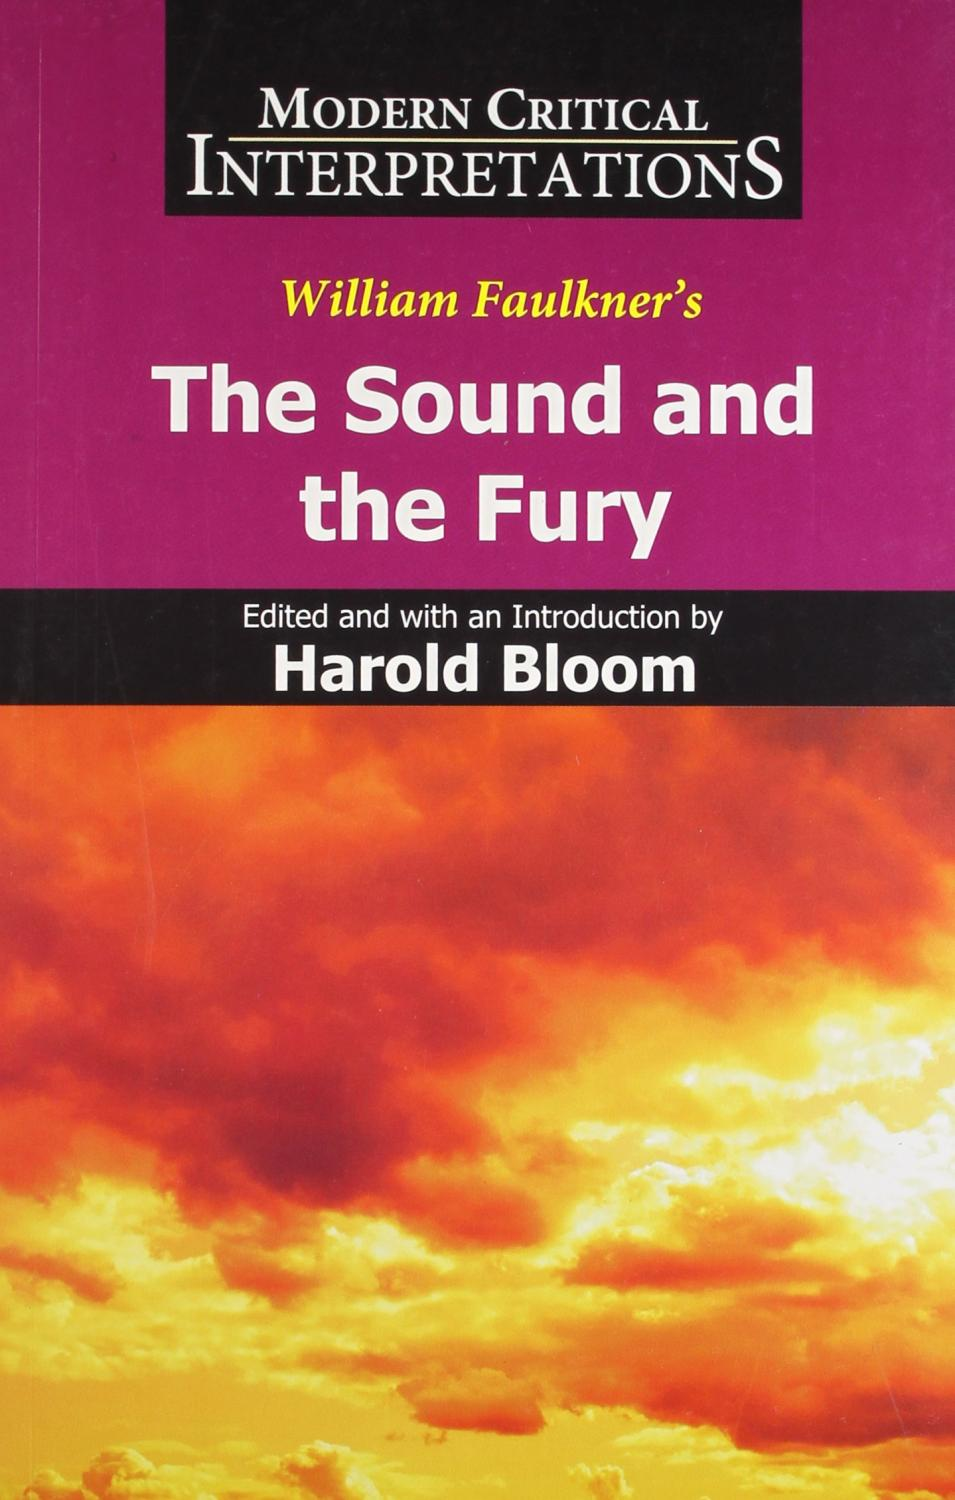 the sound and the fury by william faulkner abebooks